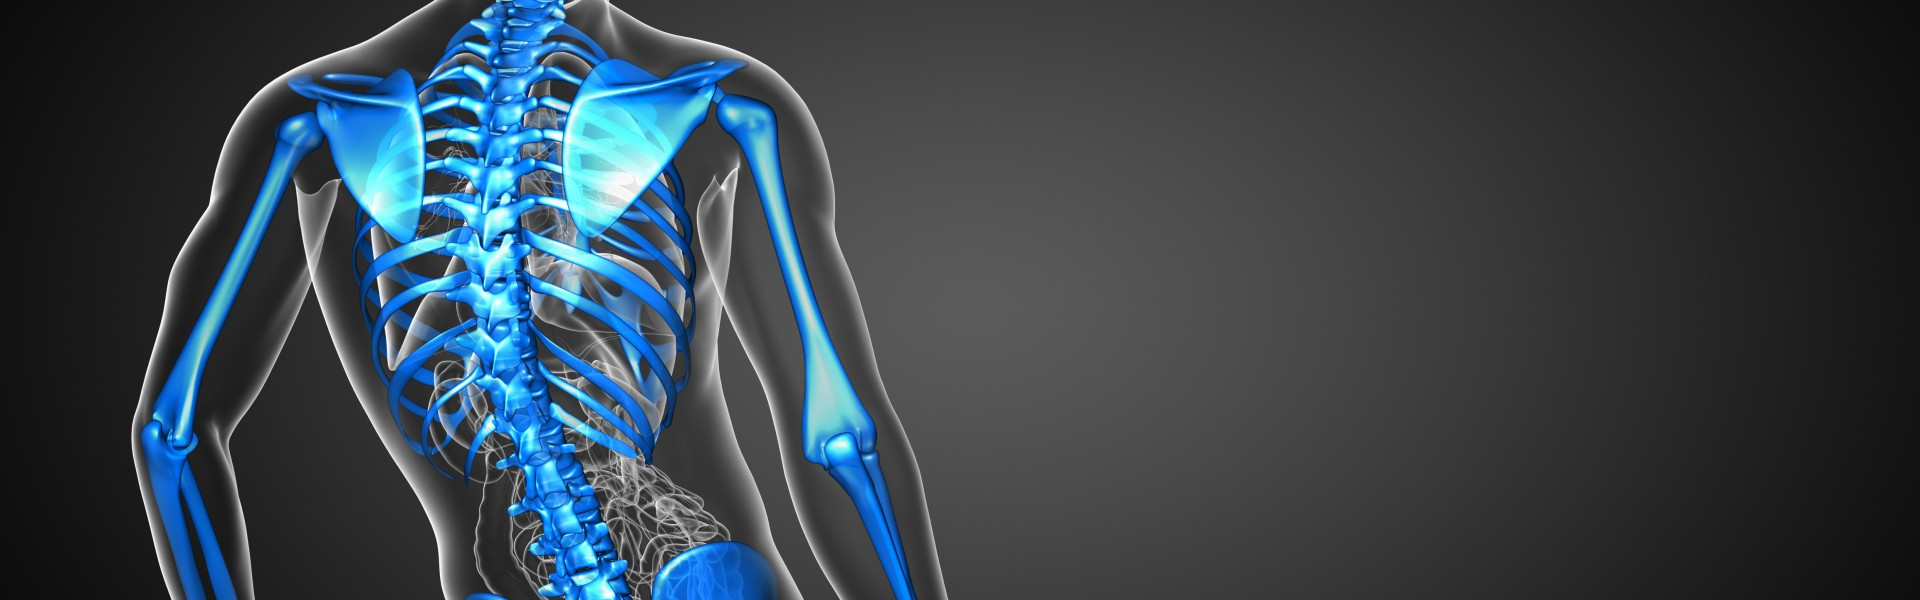 3d render medical illustration of the skeleton bone - back view